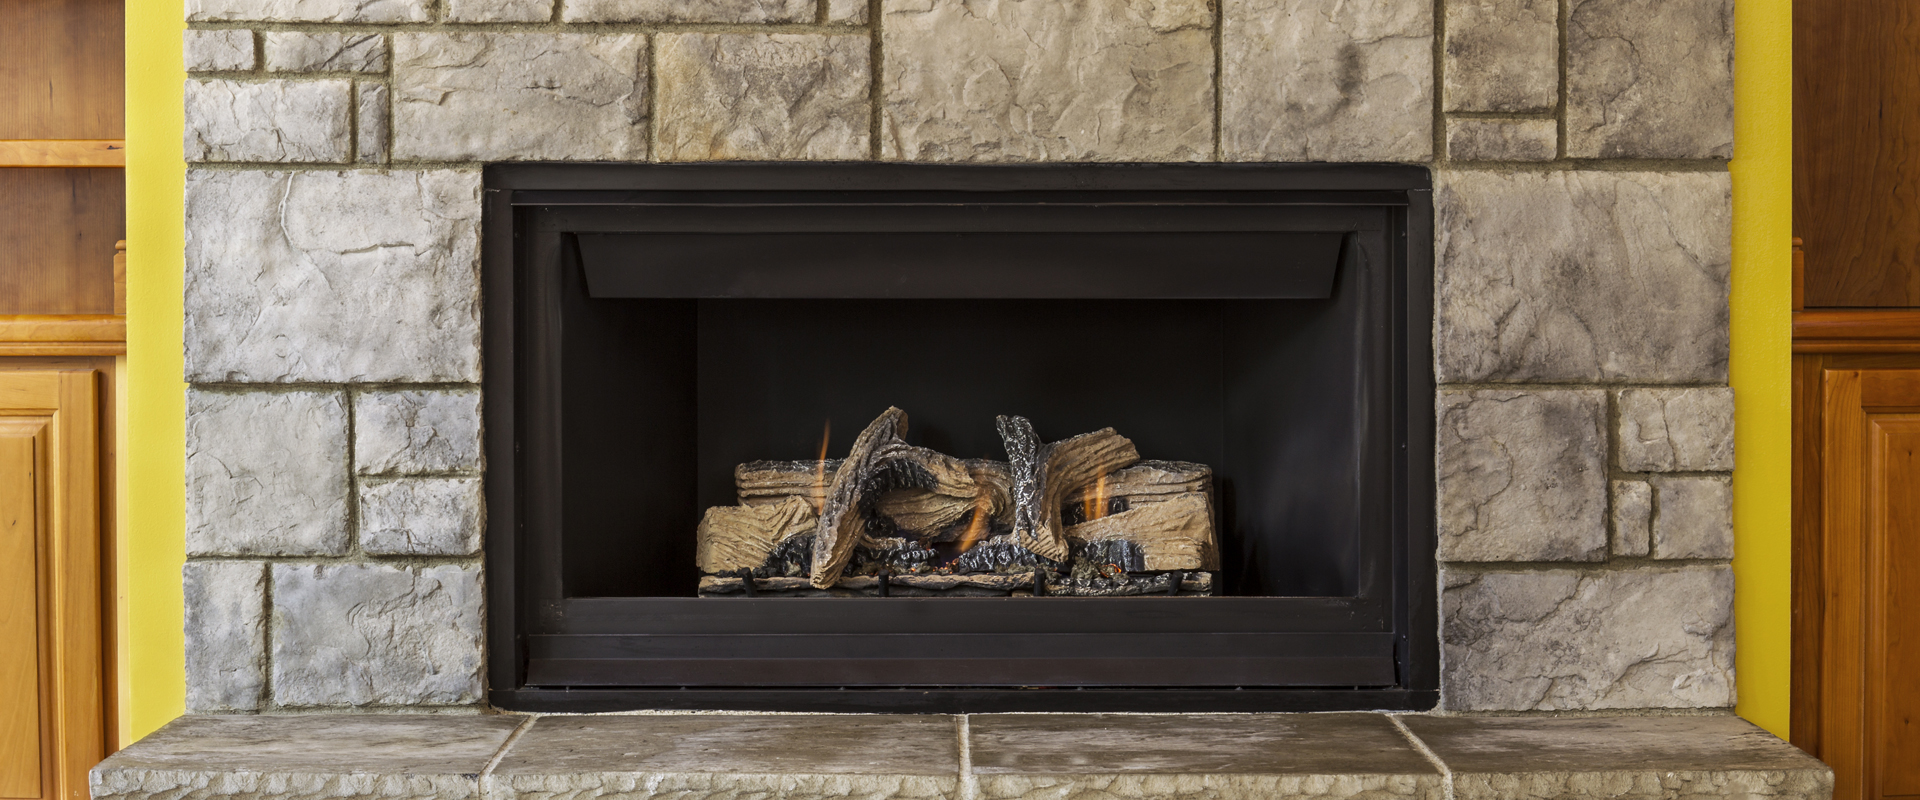 Fireplace Sioux Falls  Get your gas fireplace serviced by Zoom Fix today.